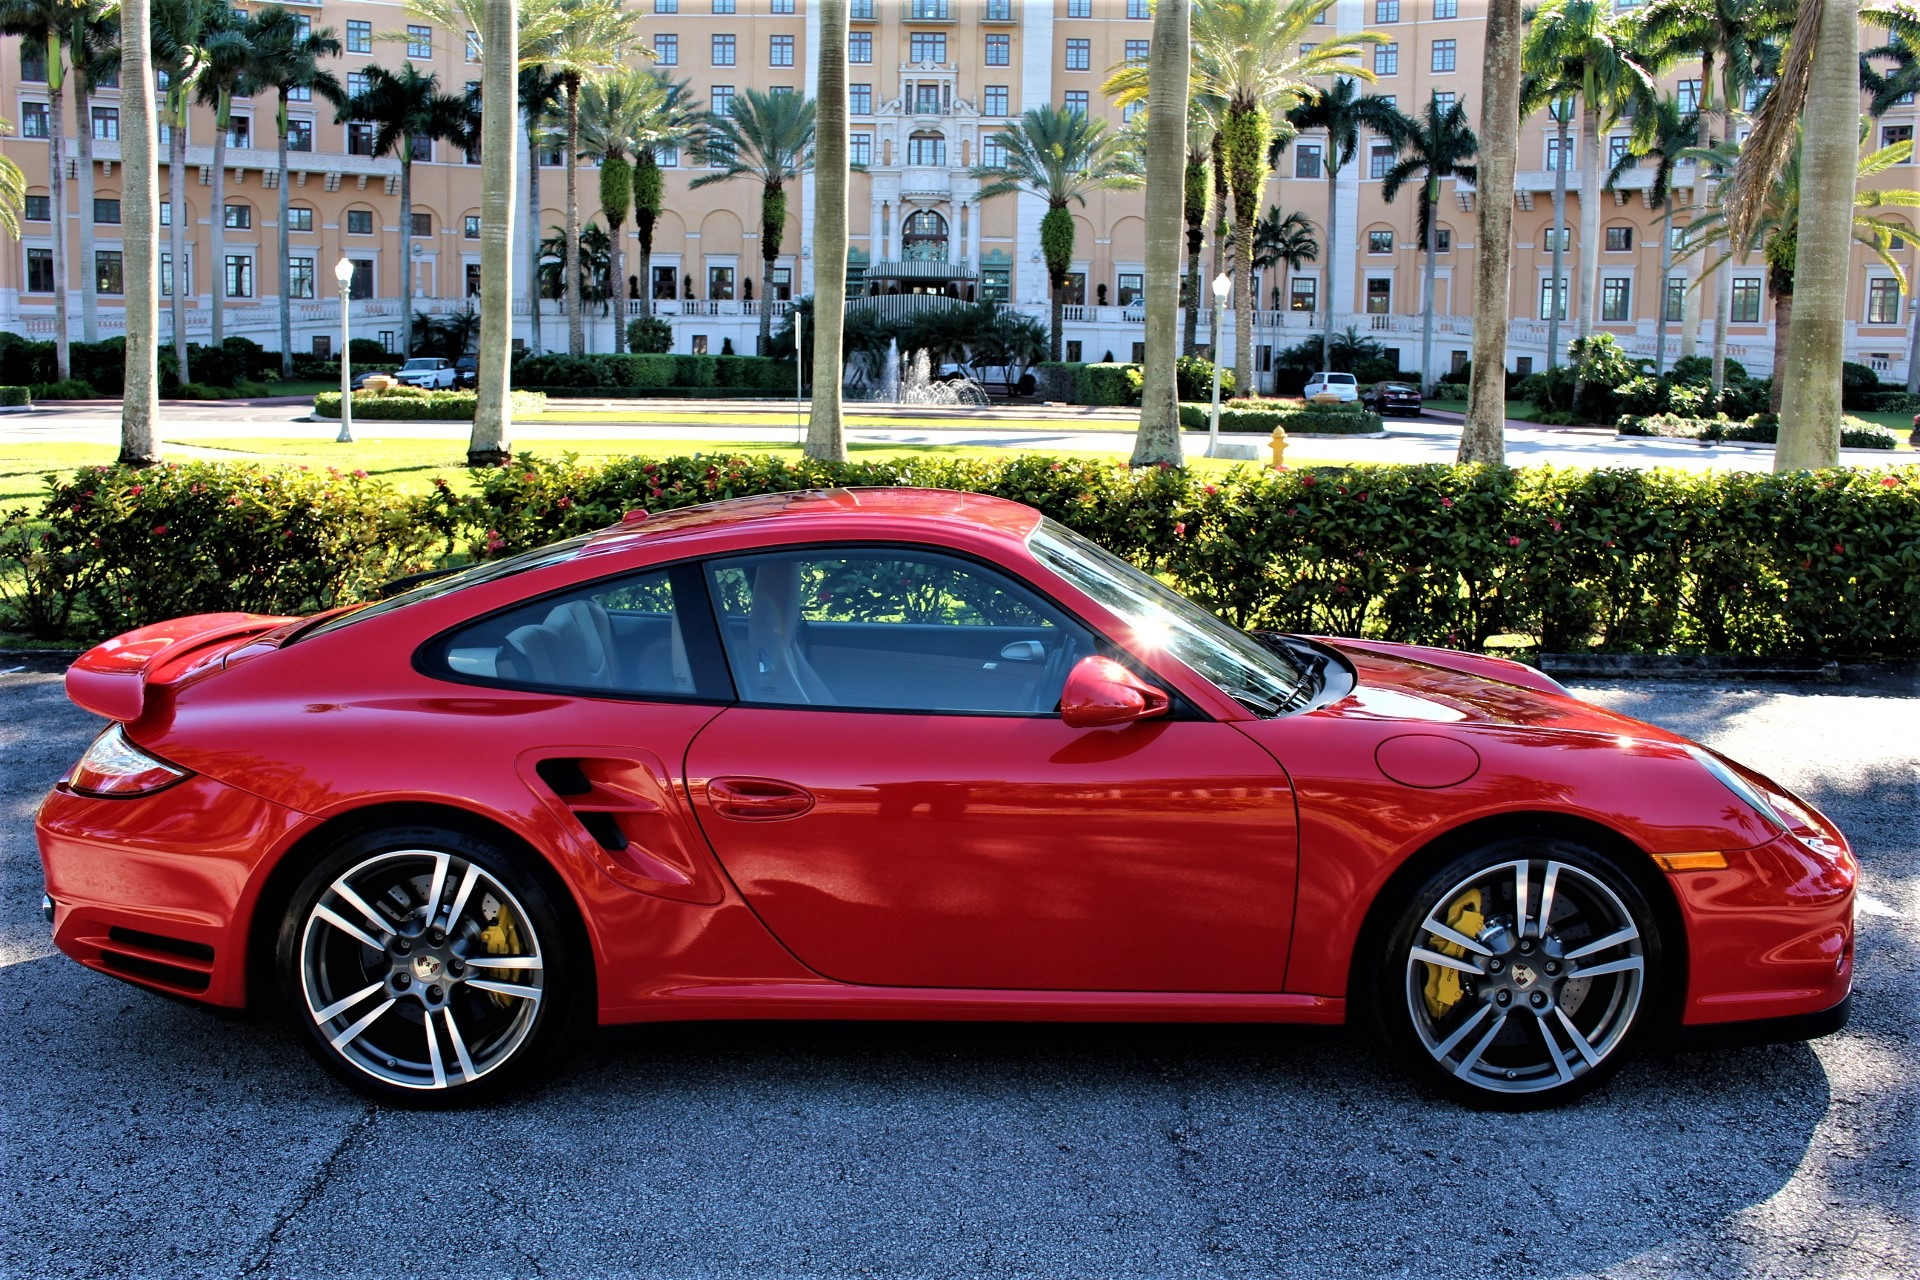 Used 2012 Porsche 911 Turbo for sale Sold at The Gables Sports Cars in Miami FL 33146 1